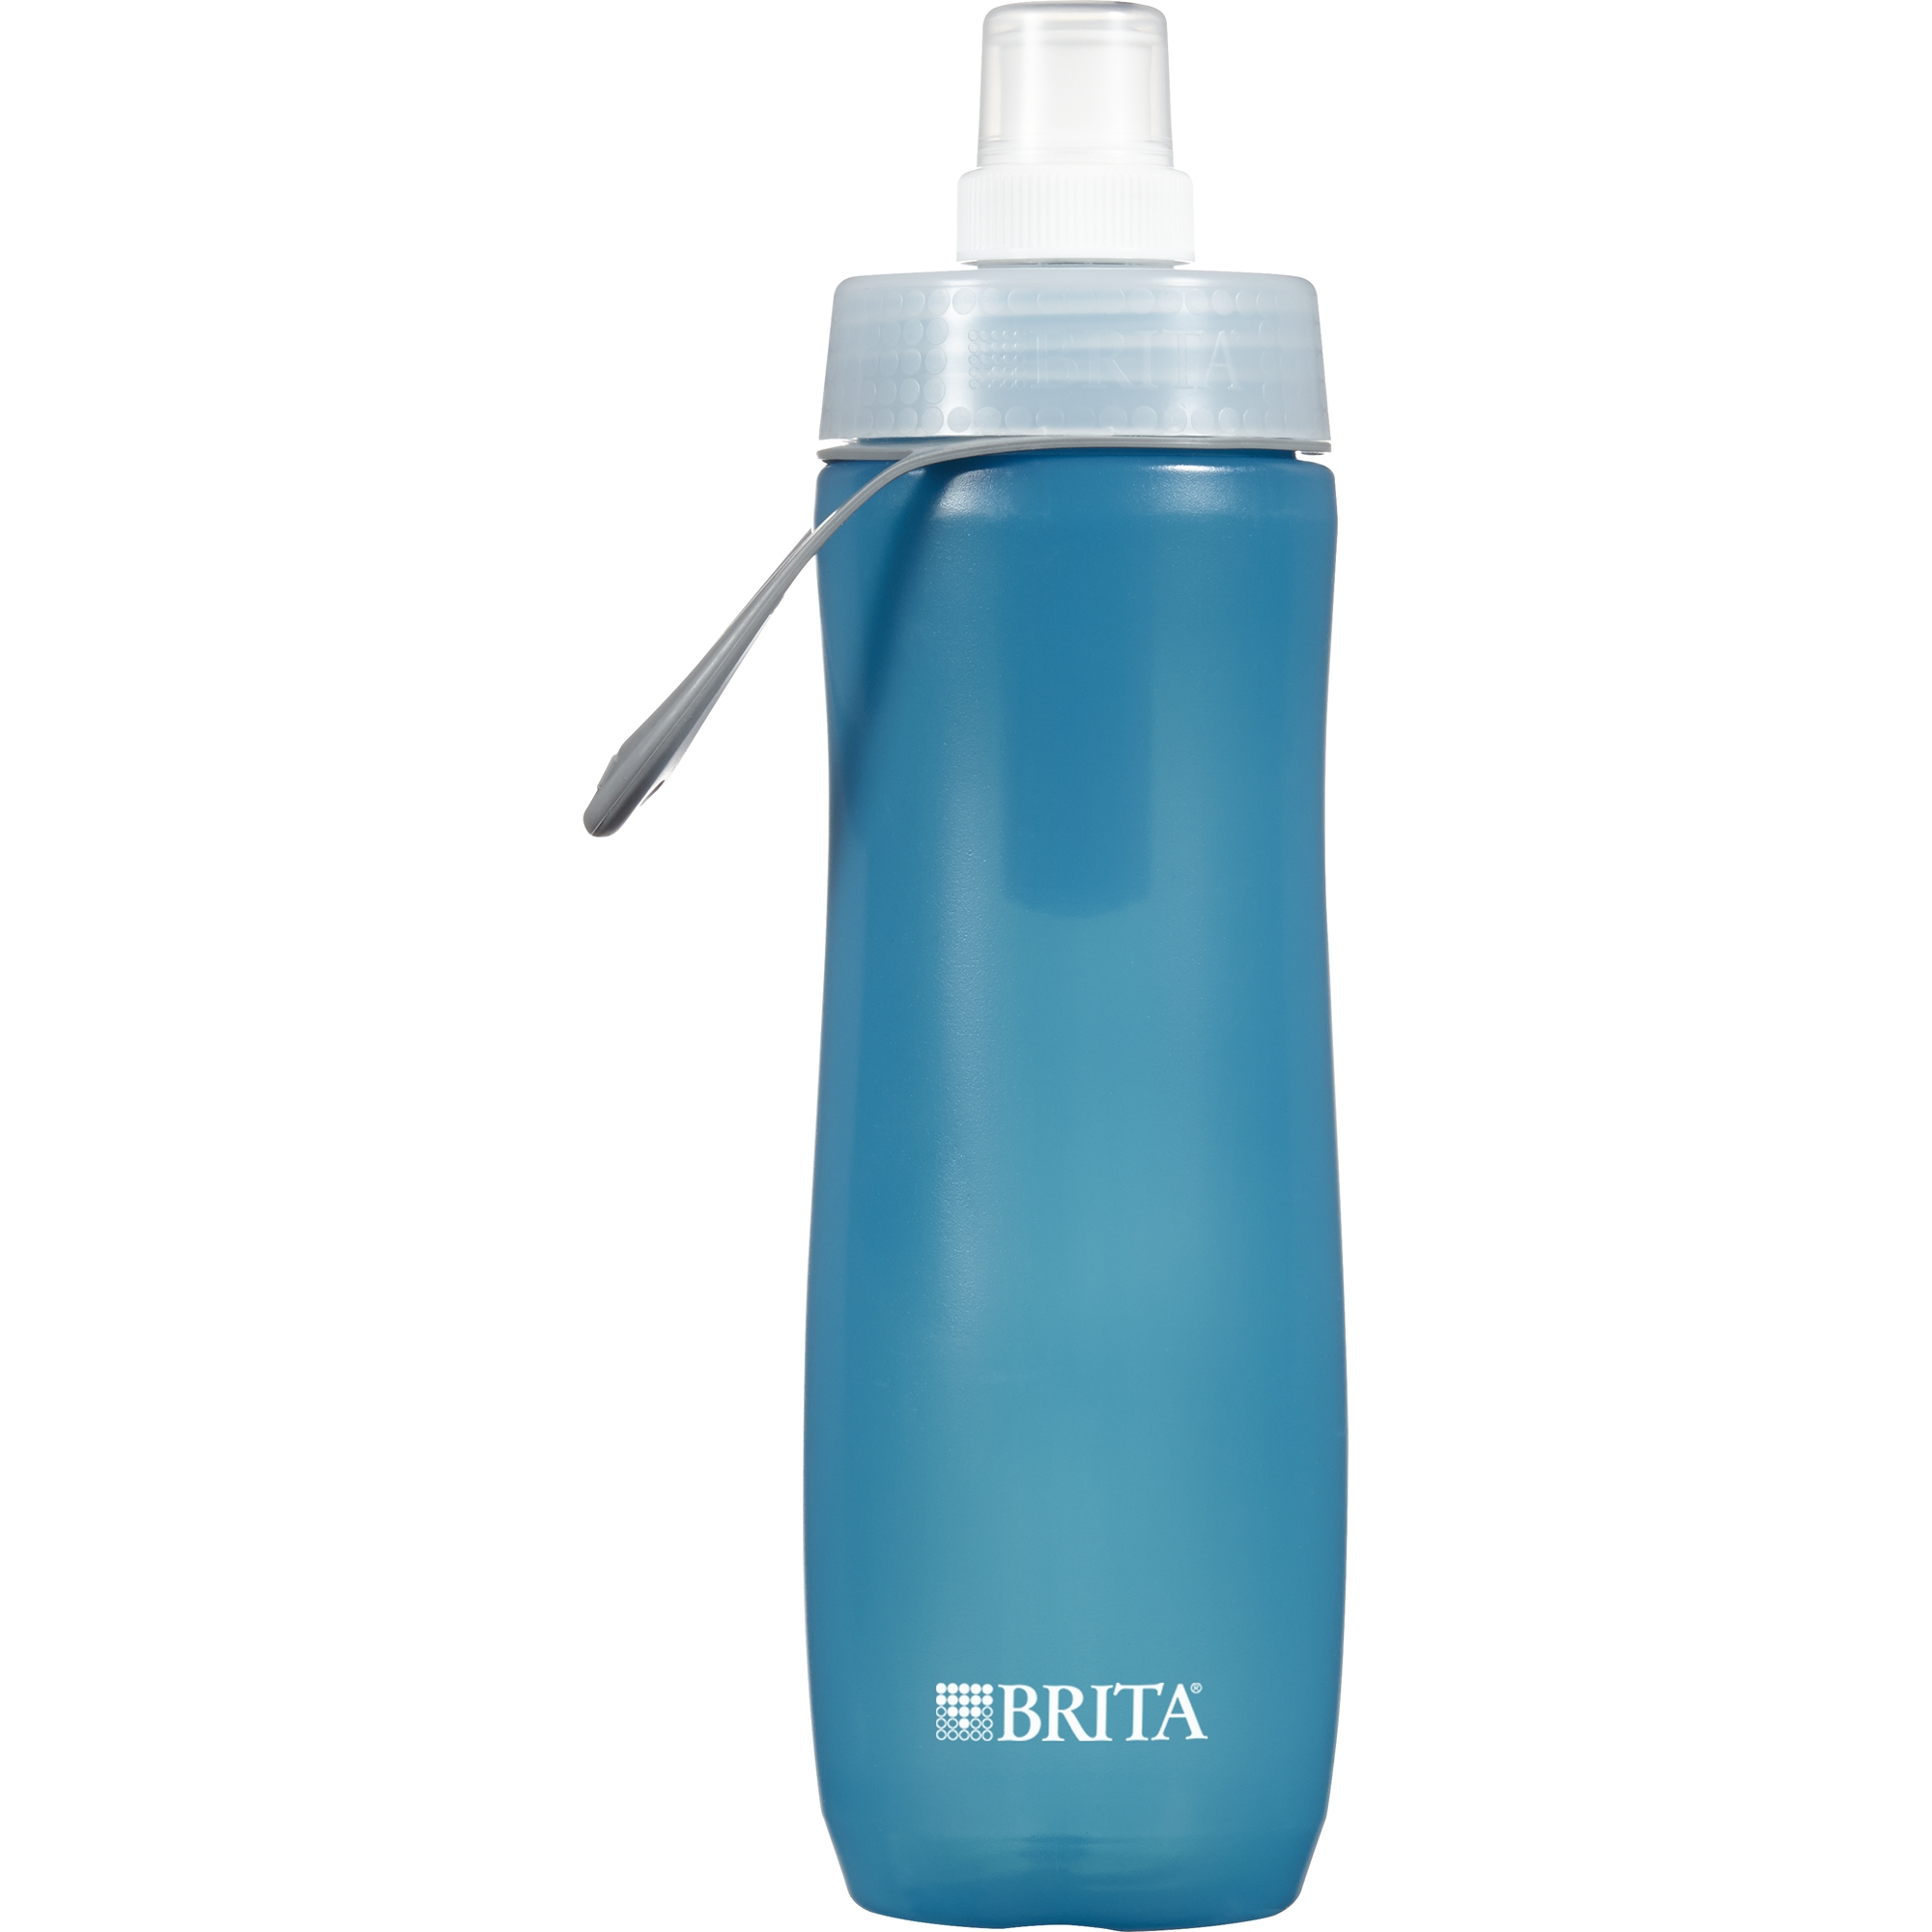 Brita Sport Water Bottle with Filter BPA Free Blue 20 Ounce by The Clorox Company